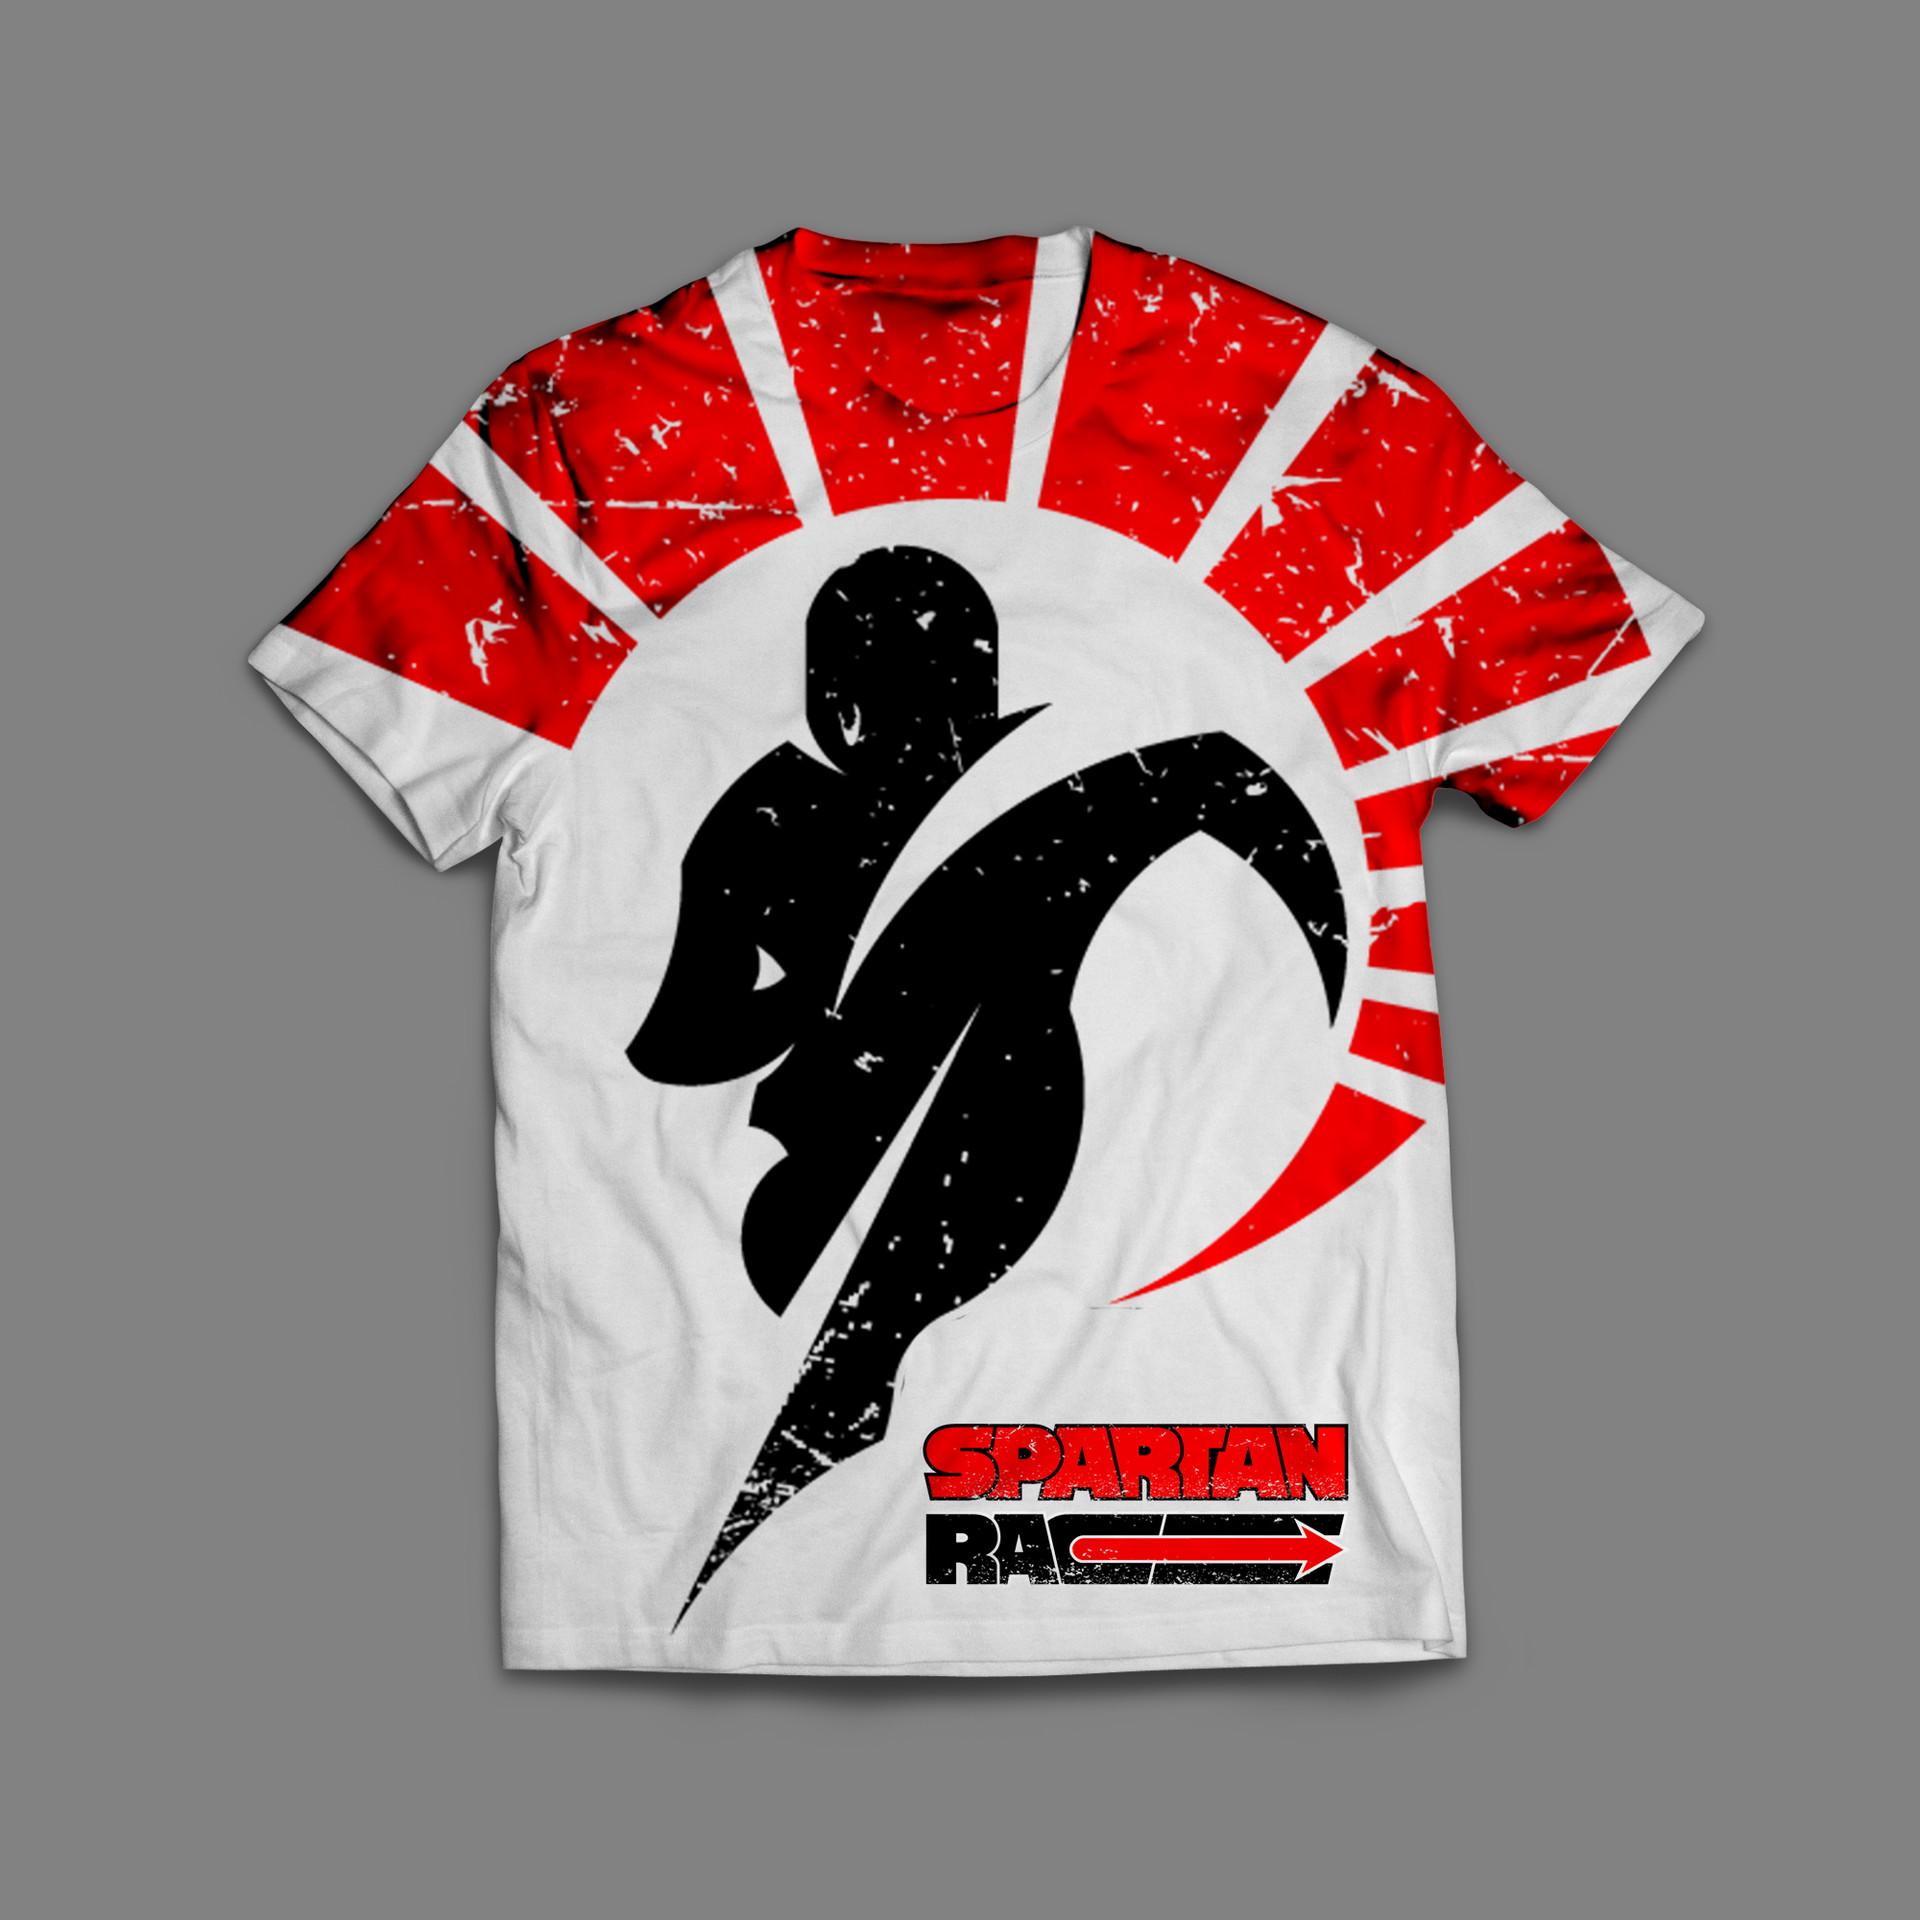 Richard t white jr spartanrace tshirtmockup 07